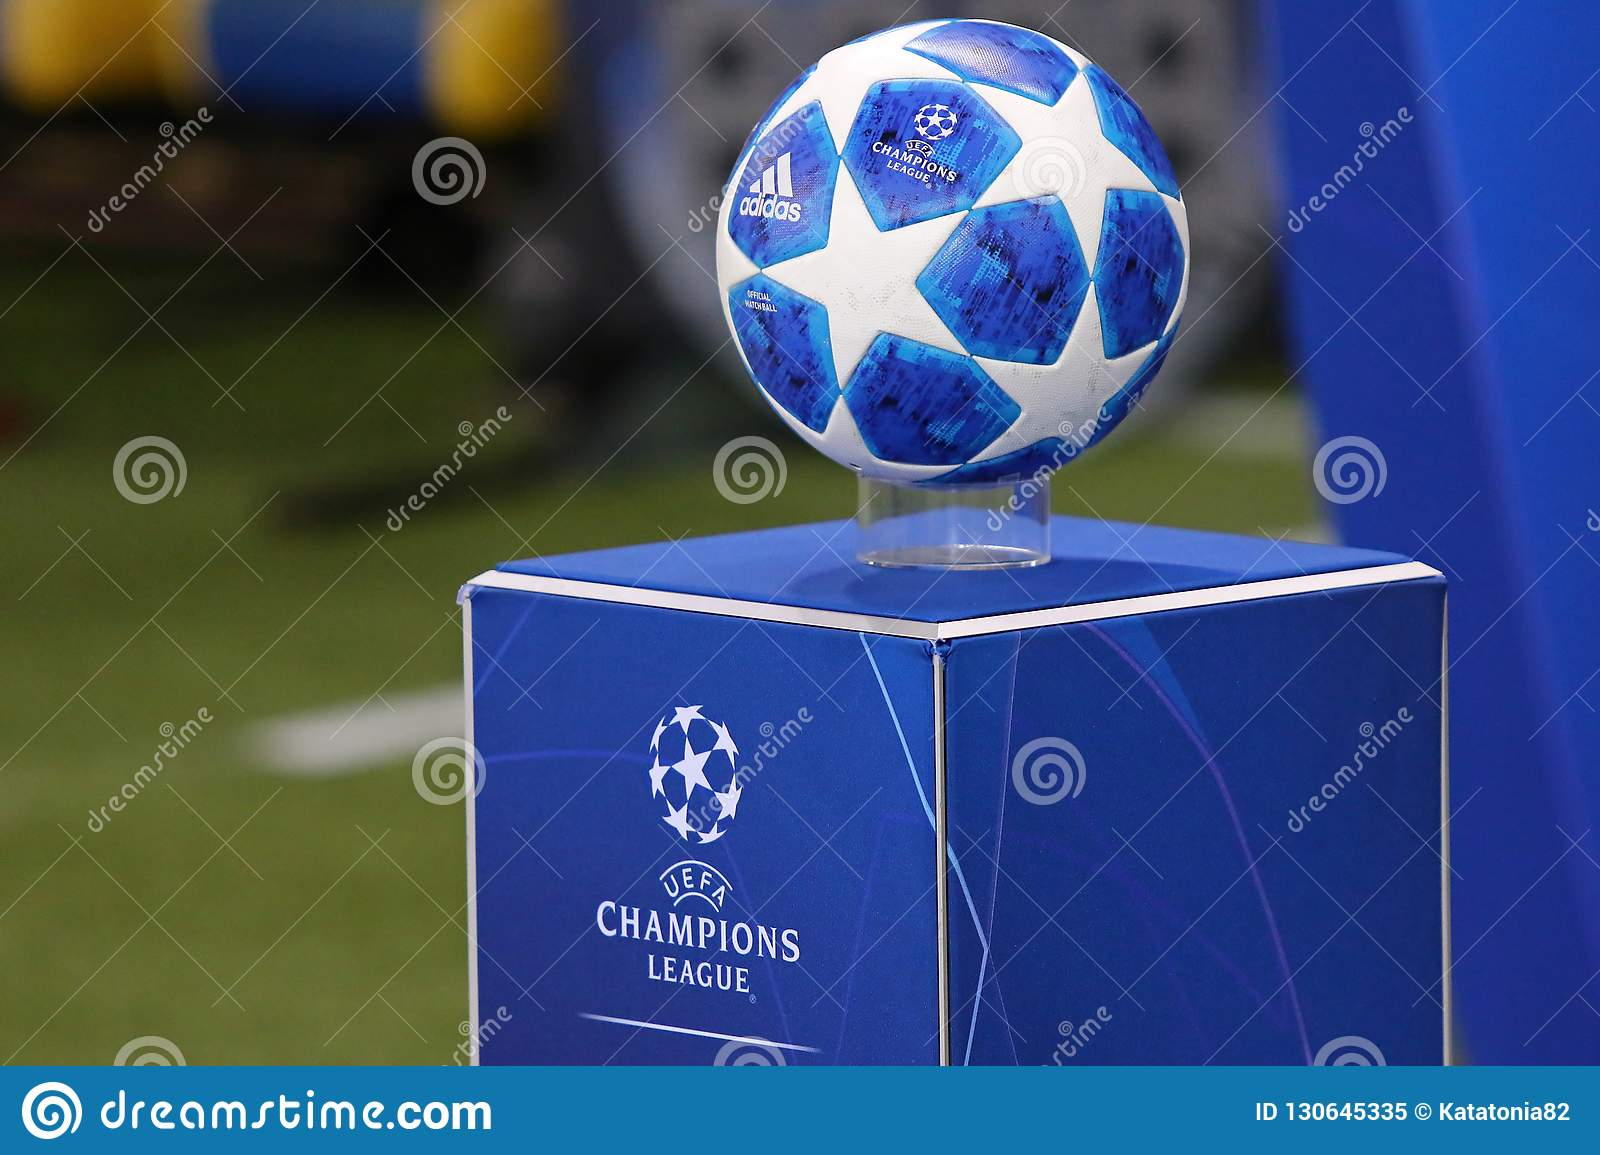 official uefa champions league 2018 19 match ball editorial image image of kick matchball 130645335 https www dreamstime com kharkiv ukraine october official uefa champions league match ball pedestal uefa champions league game shakhtar image130645335